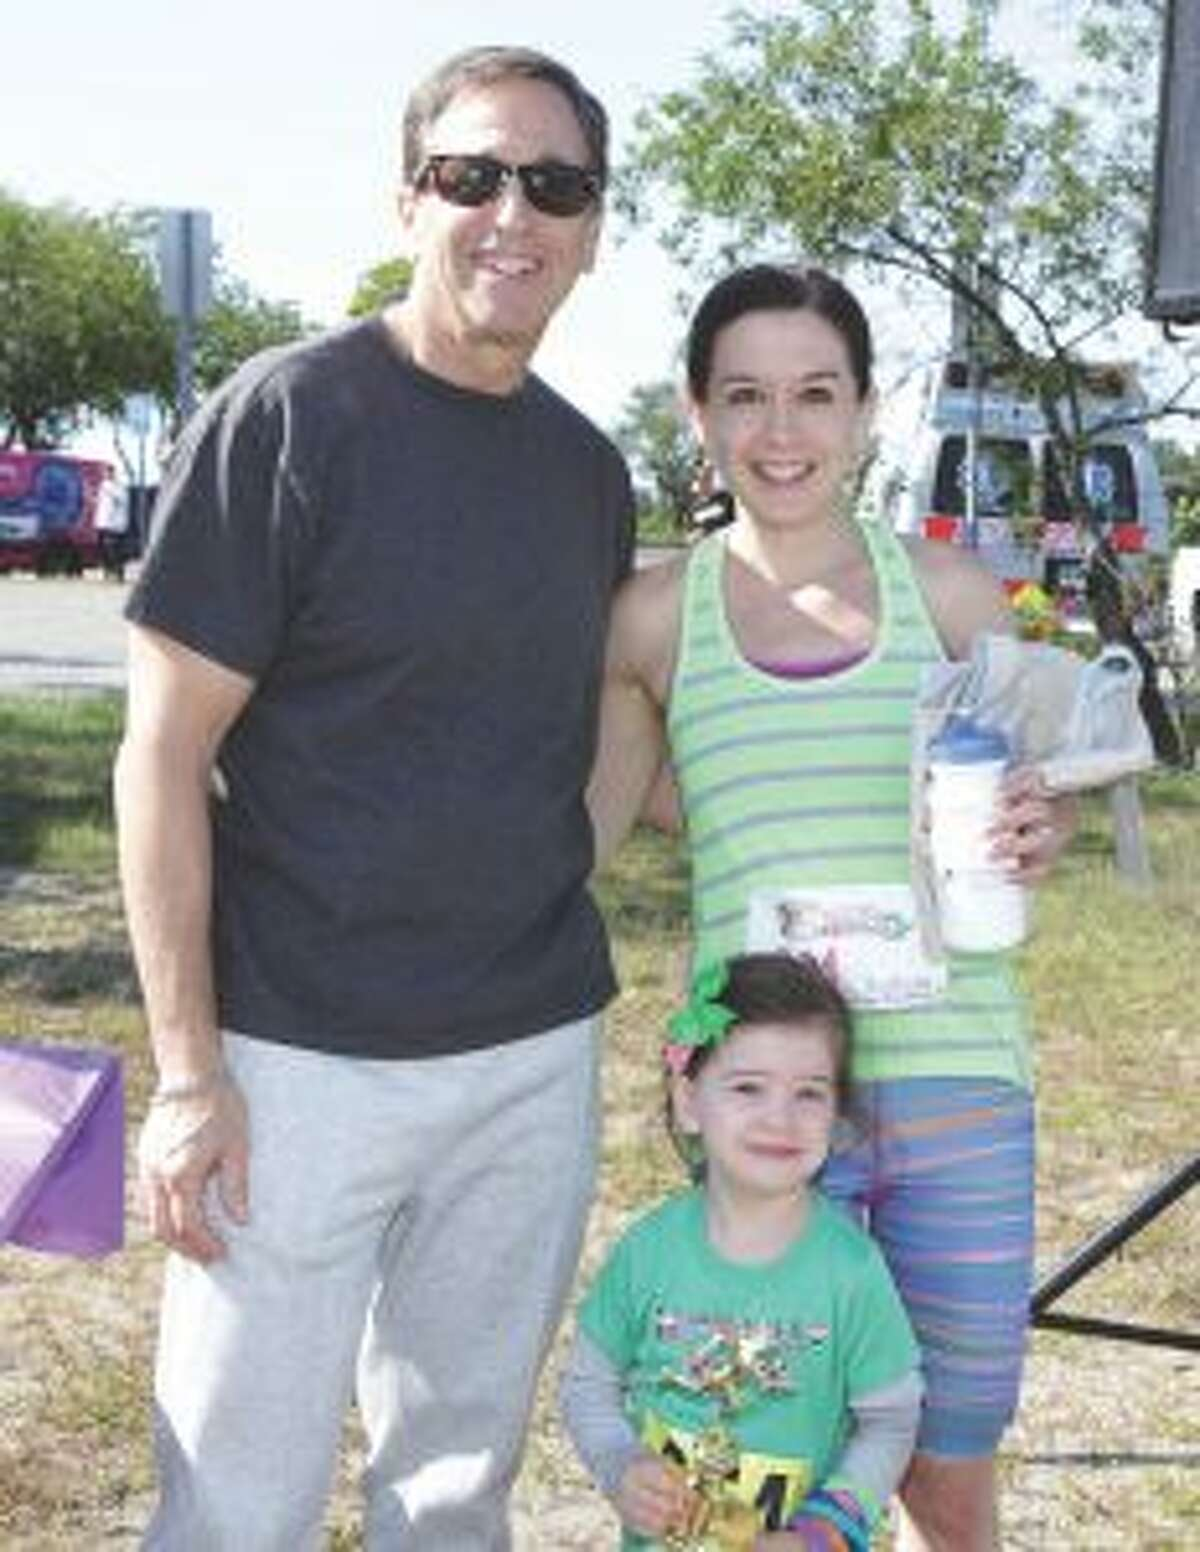 The overall winner of the 5K timed race for the Autism SpectRUN at Jennings Beach in Fairfield was Rebecca Blanchard of Stamford, pictured with her daughter Keira. She is being congratulated by Martin D. Schwartz, President and CEO of The Kennedy Center in Trumbull.